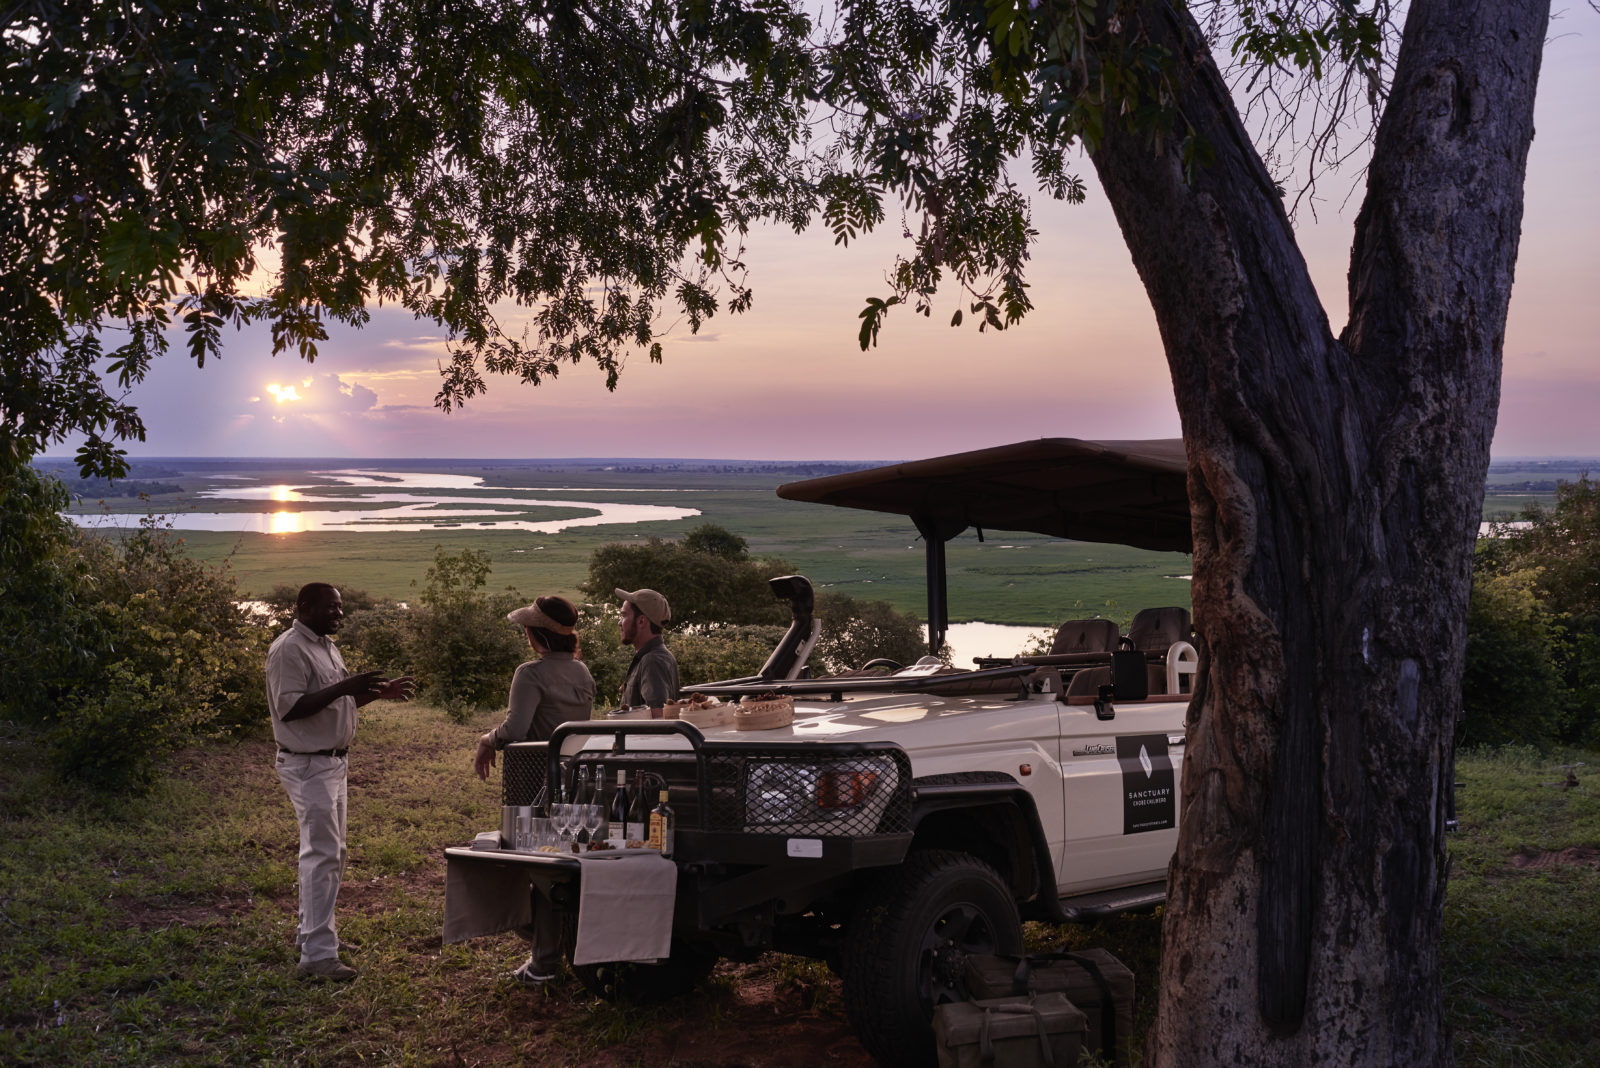 Percet spot for a sundowner with Chobe Chilwero